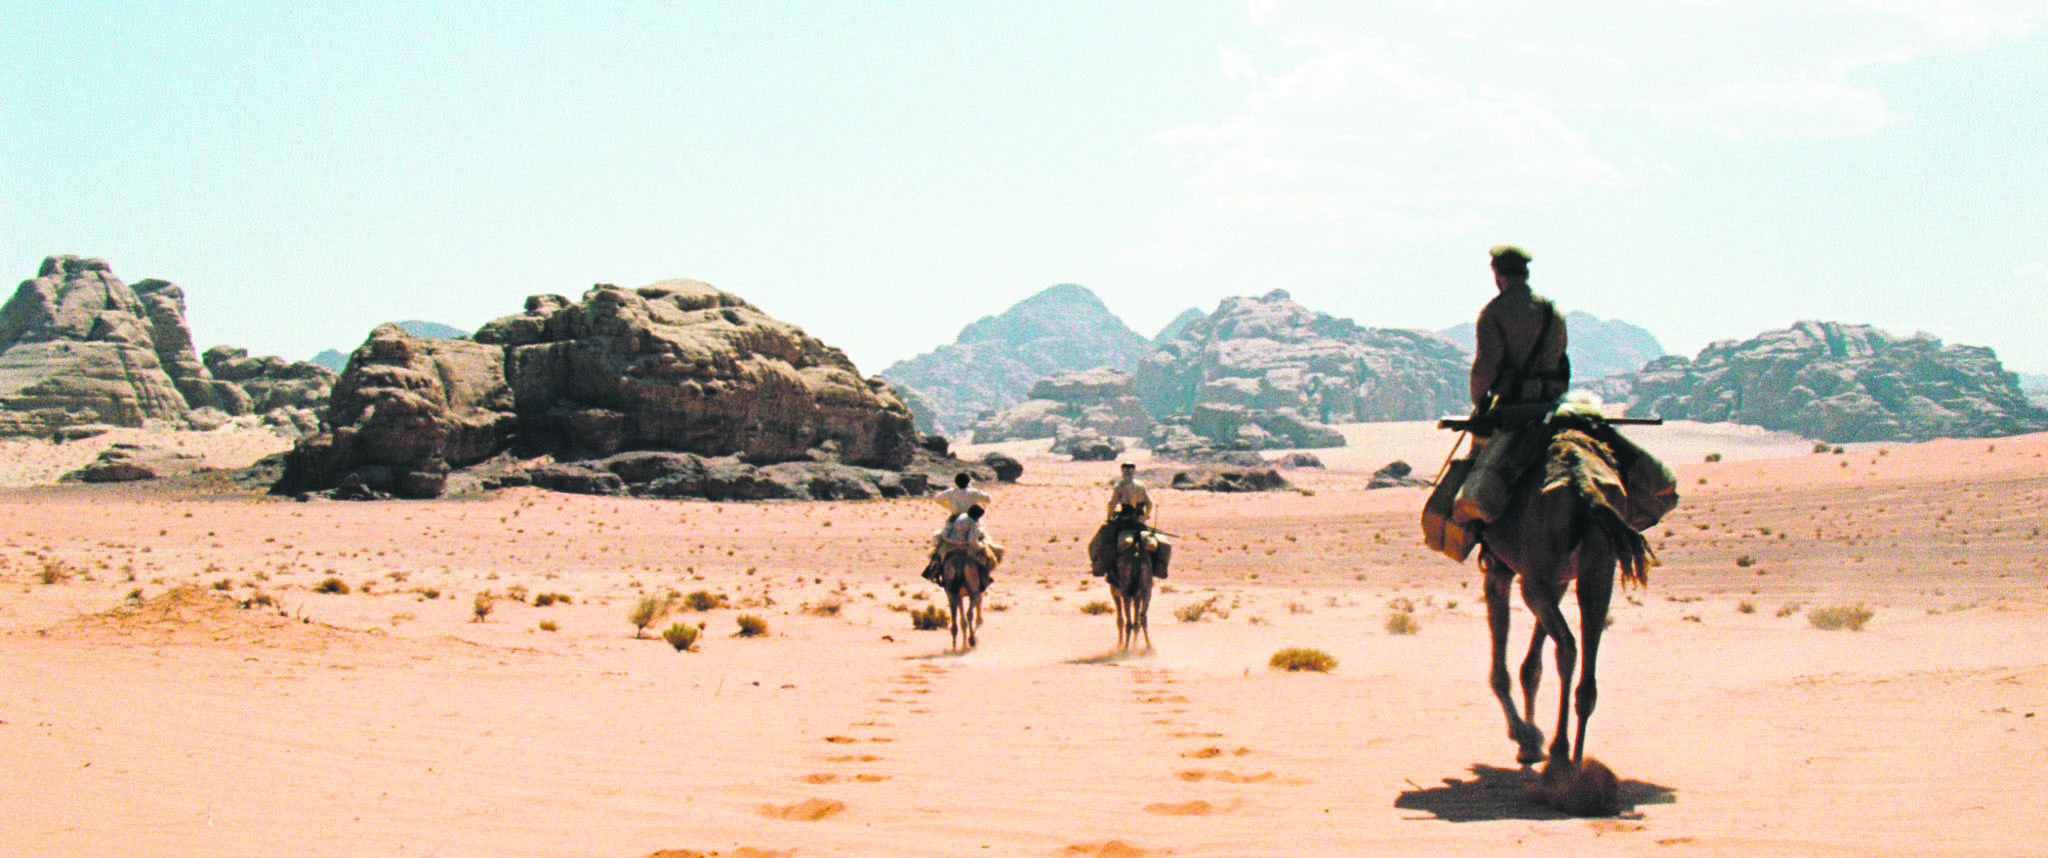 The film provides a portrait of the Bedouins during World War I and offers an interesting depiction of a weary Ottoman official in the Hejaz as something other than a cartoon villain we are used to seeing on the big screen.